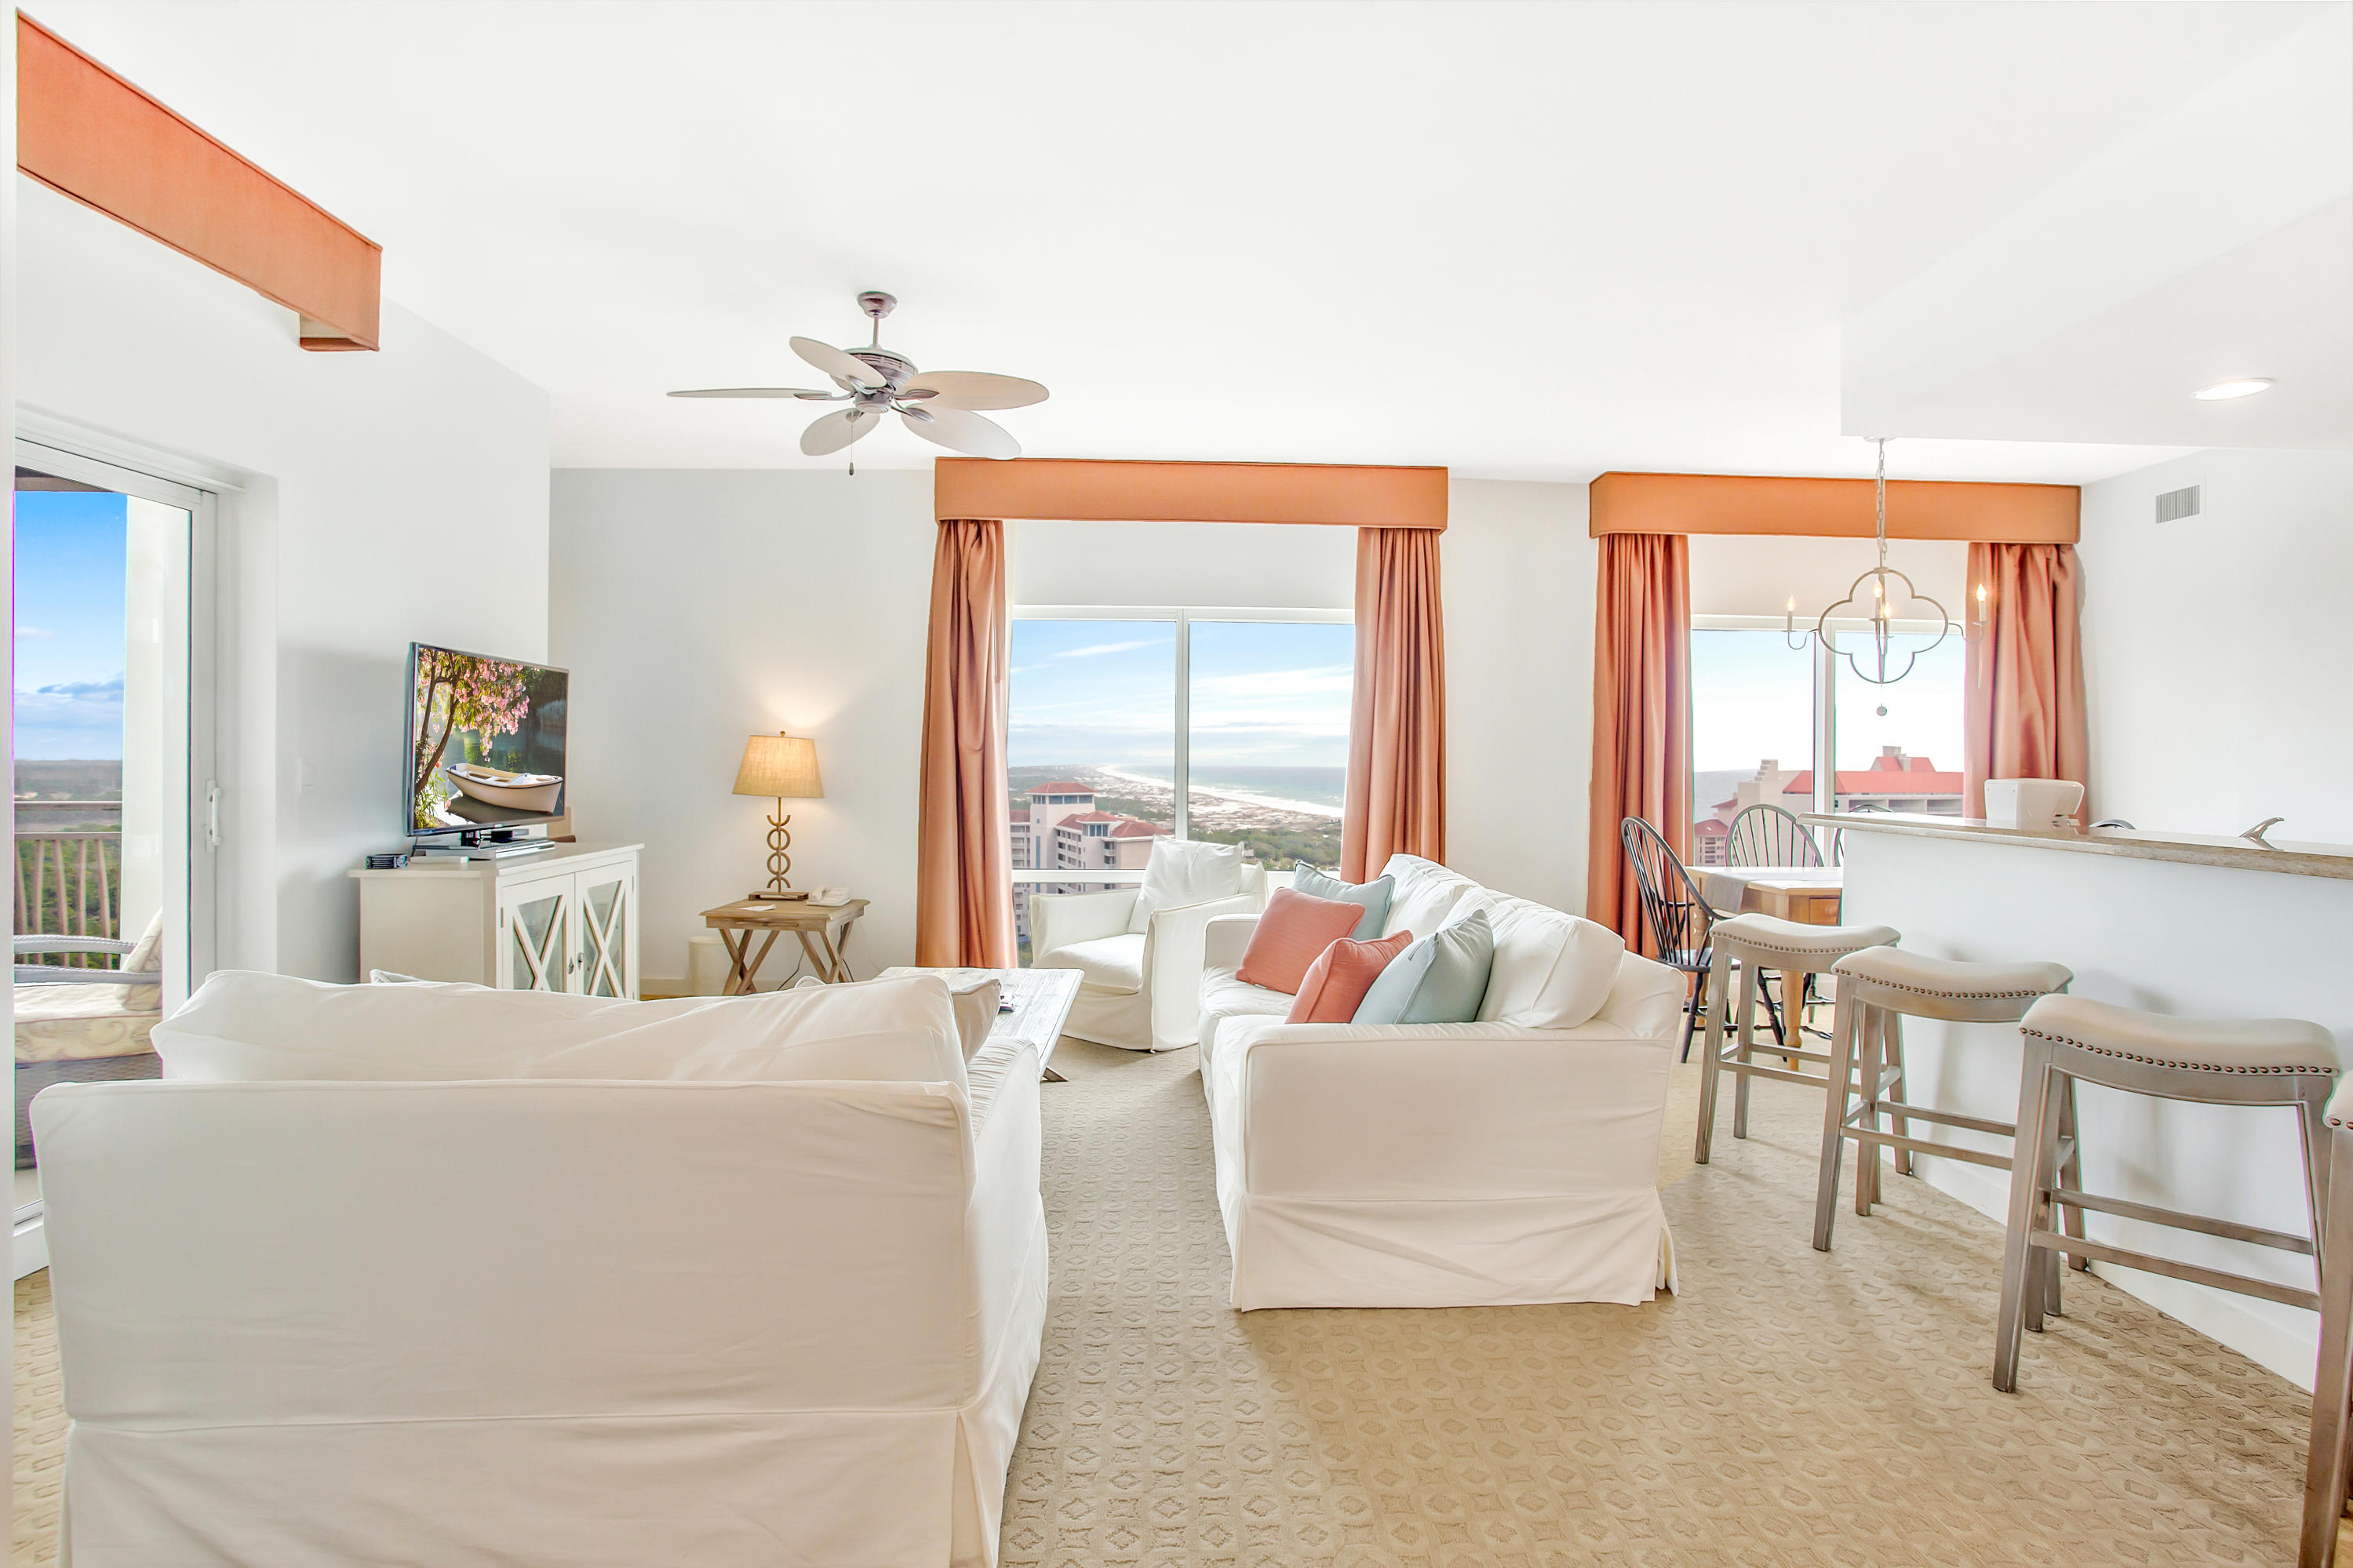 The spectacular coastline views of the Gulf of Mexico will amaze you from the moment you step into t